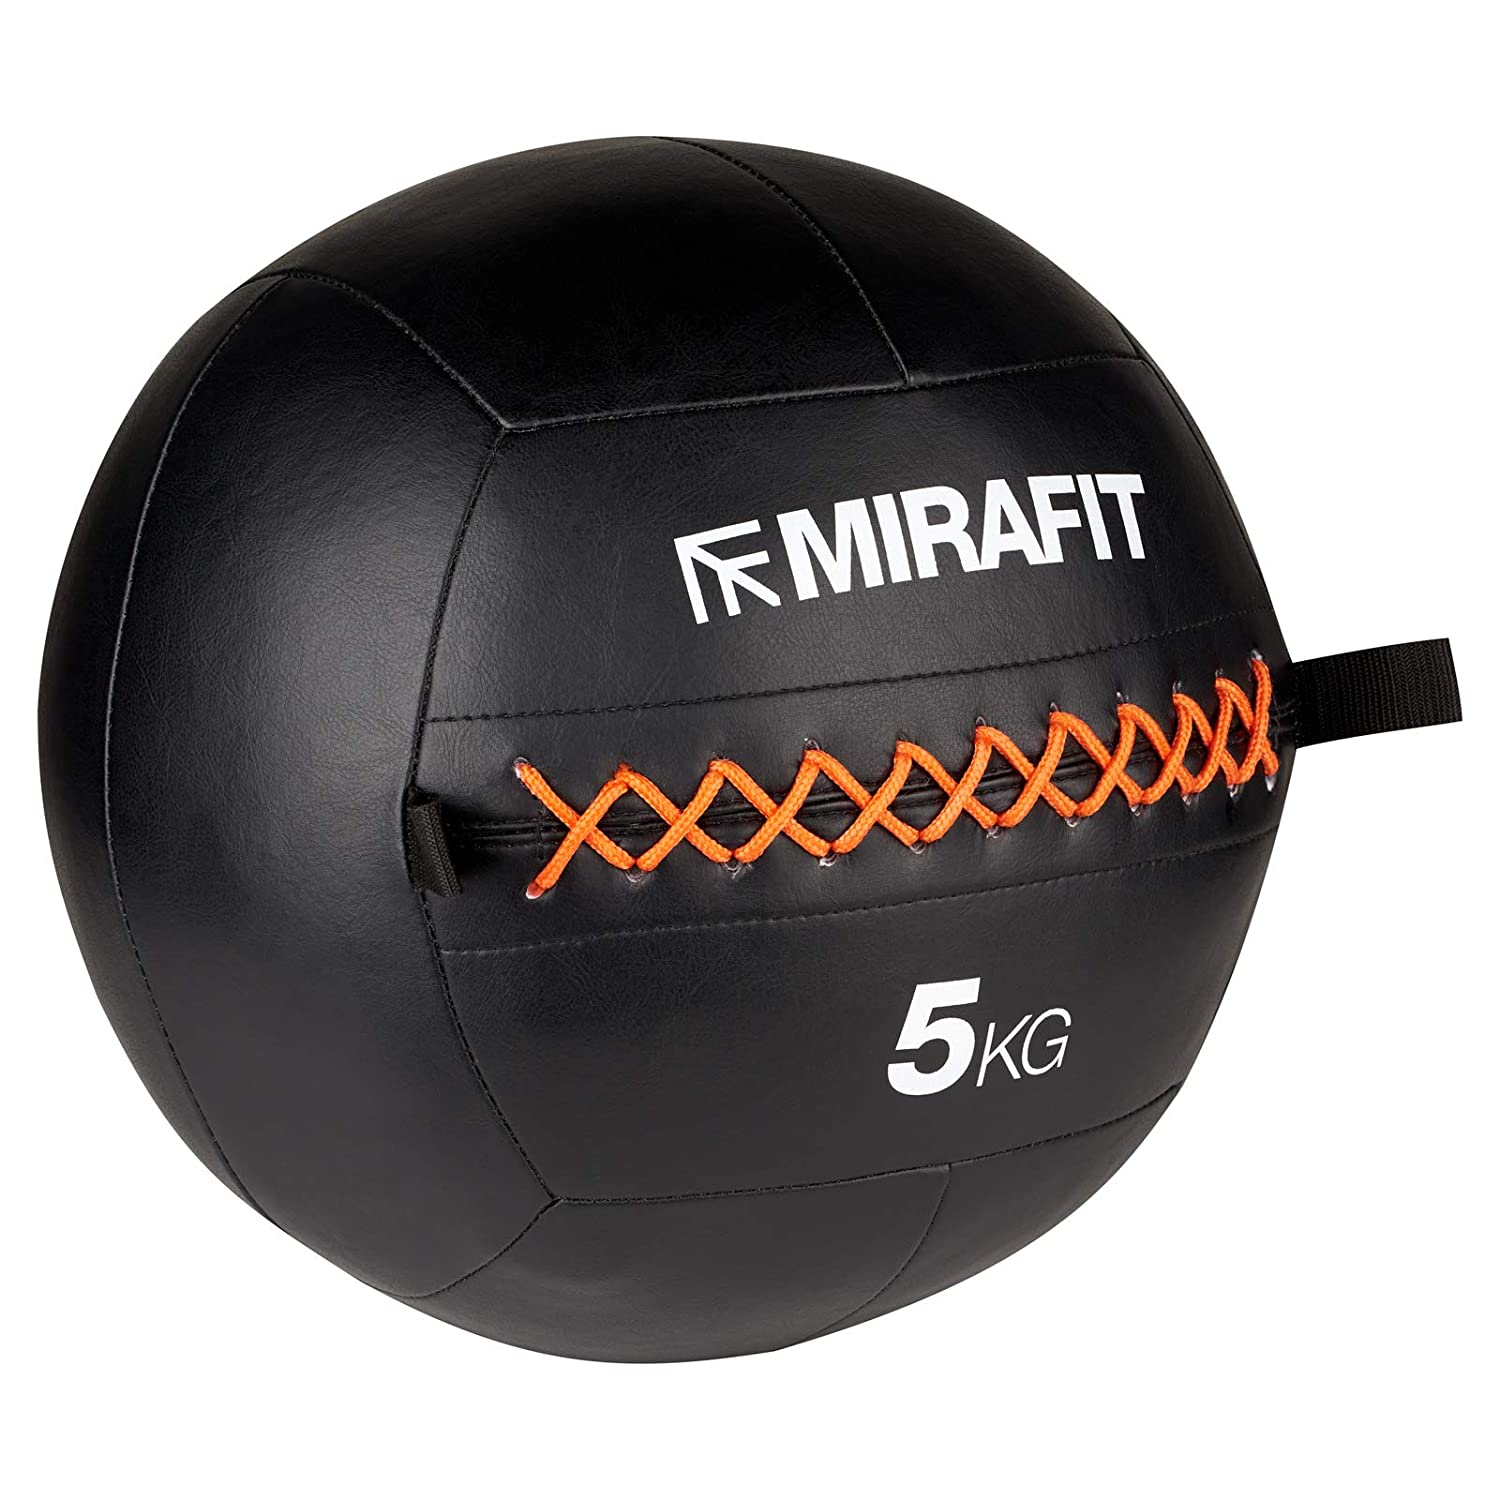 afee9d1d6 Mirafit Stitched PU Medicine Wall Ball - Choice of Weight  Amazon.co.uk   Sports   Outdoors